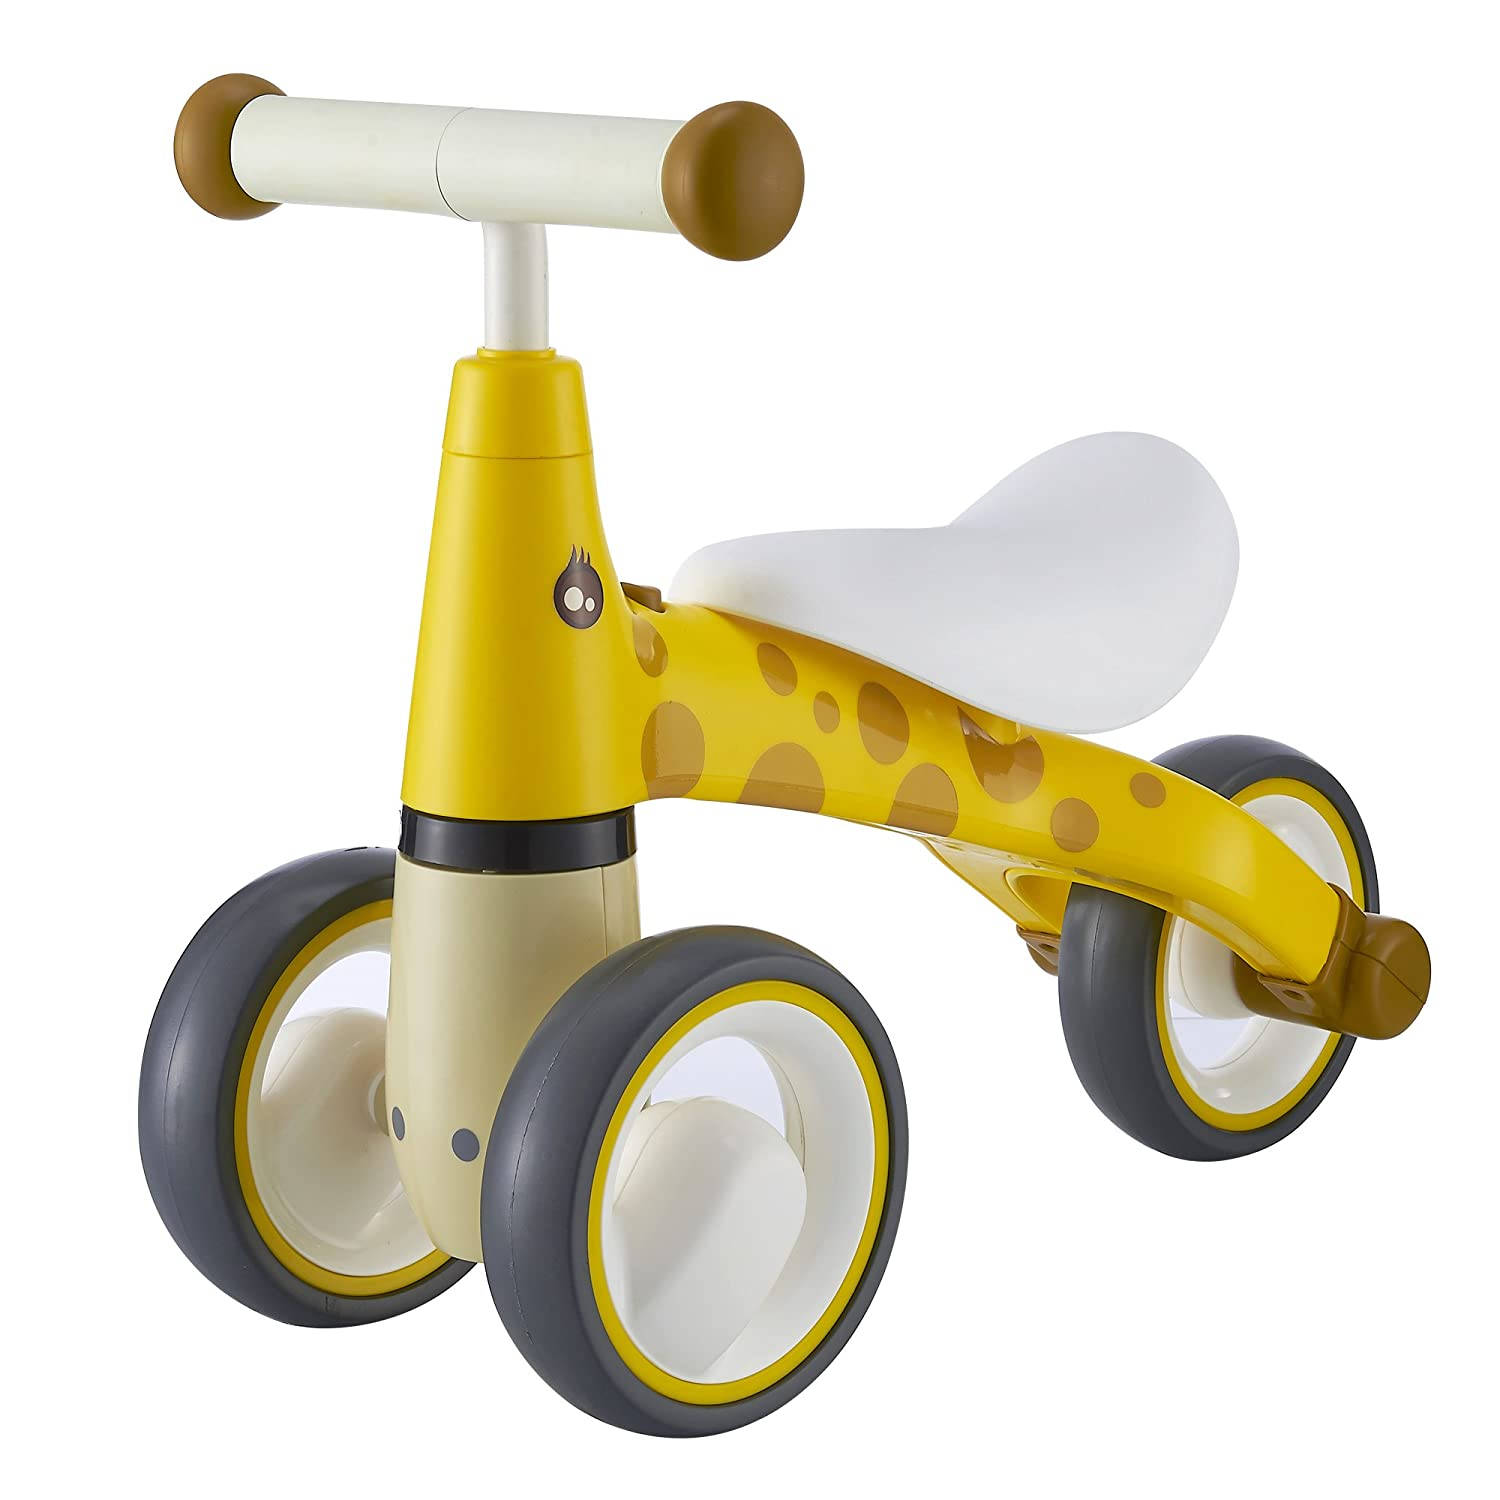 BEKILOLE Baby Sliding Bike Ride On Toy Bikes Bicycle Children No Foot Pedal Three Wheels Toddlers 1 to 3 Years BL0021001Giraffe